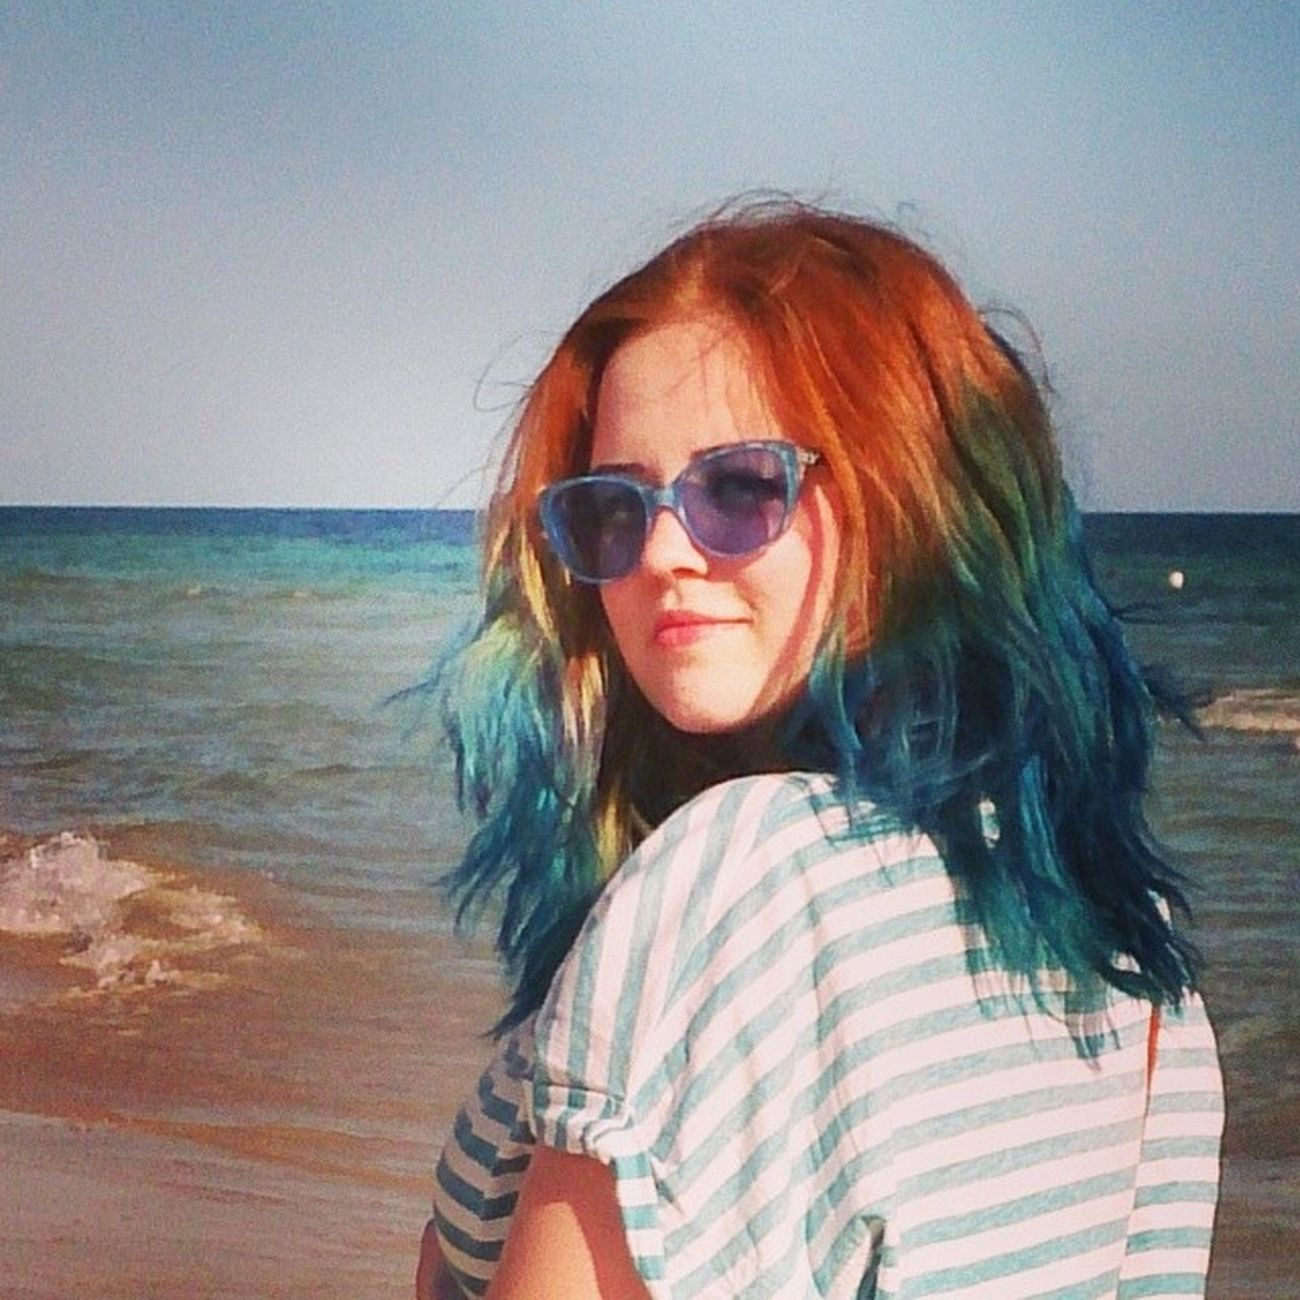 Torre Pali Italia Vacanze polishgirl blue red hair blue glasses